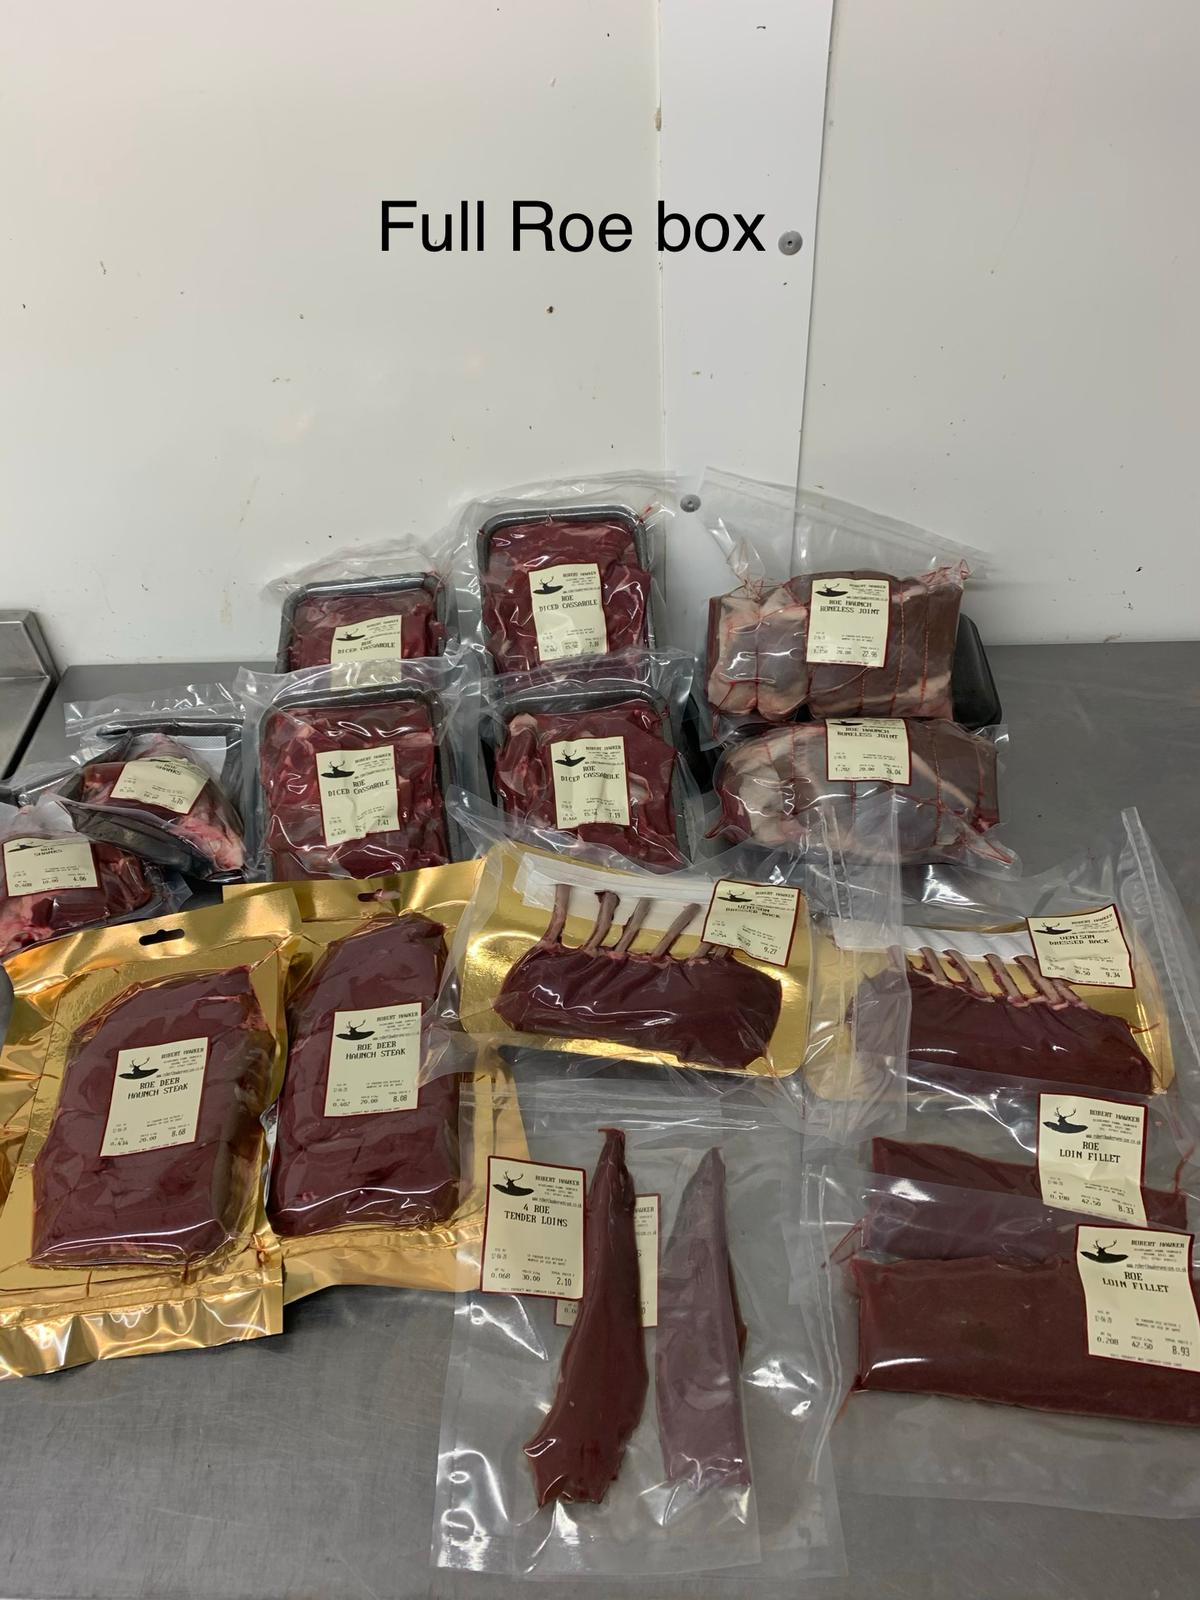 Box 4 – Full Roe